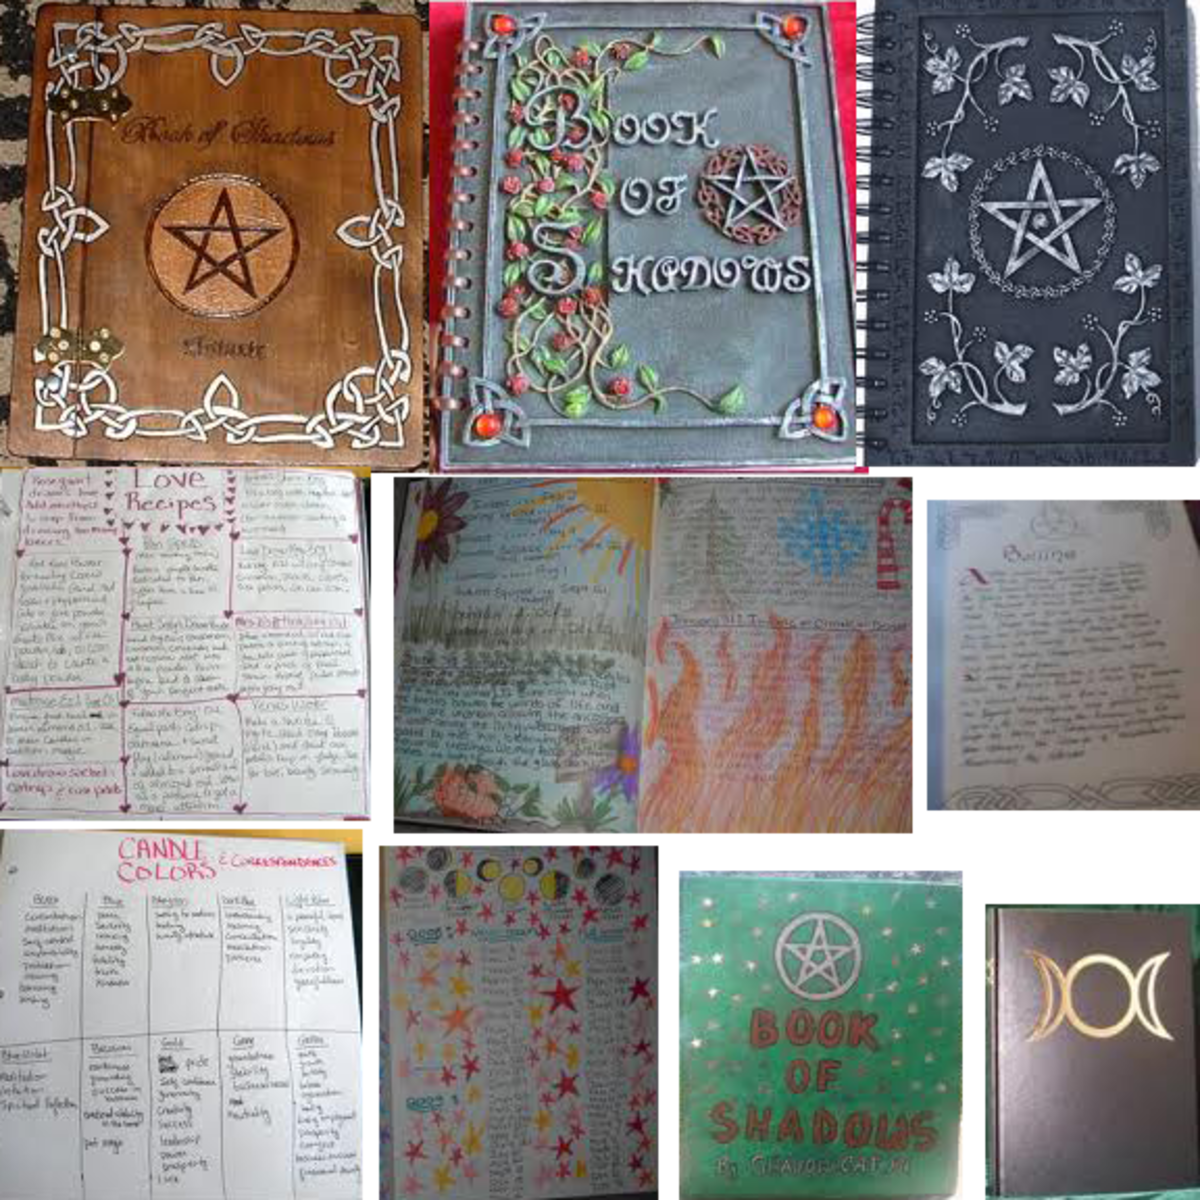 Your Book of Shadows can be simple or very decorative. Pictures and drawings are great to help you remember and to add a personal touch and energy to your Book of Shadows.